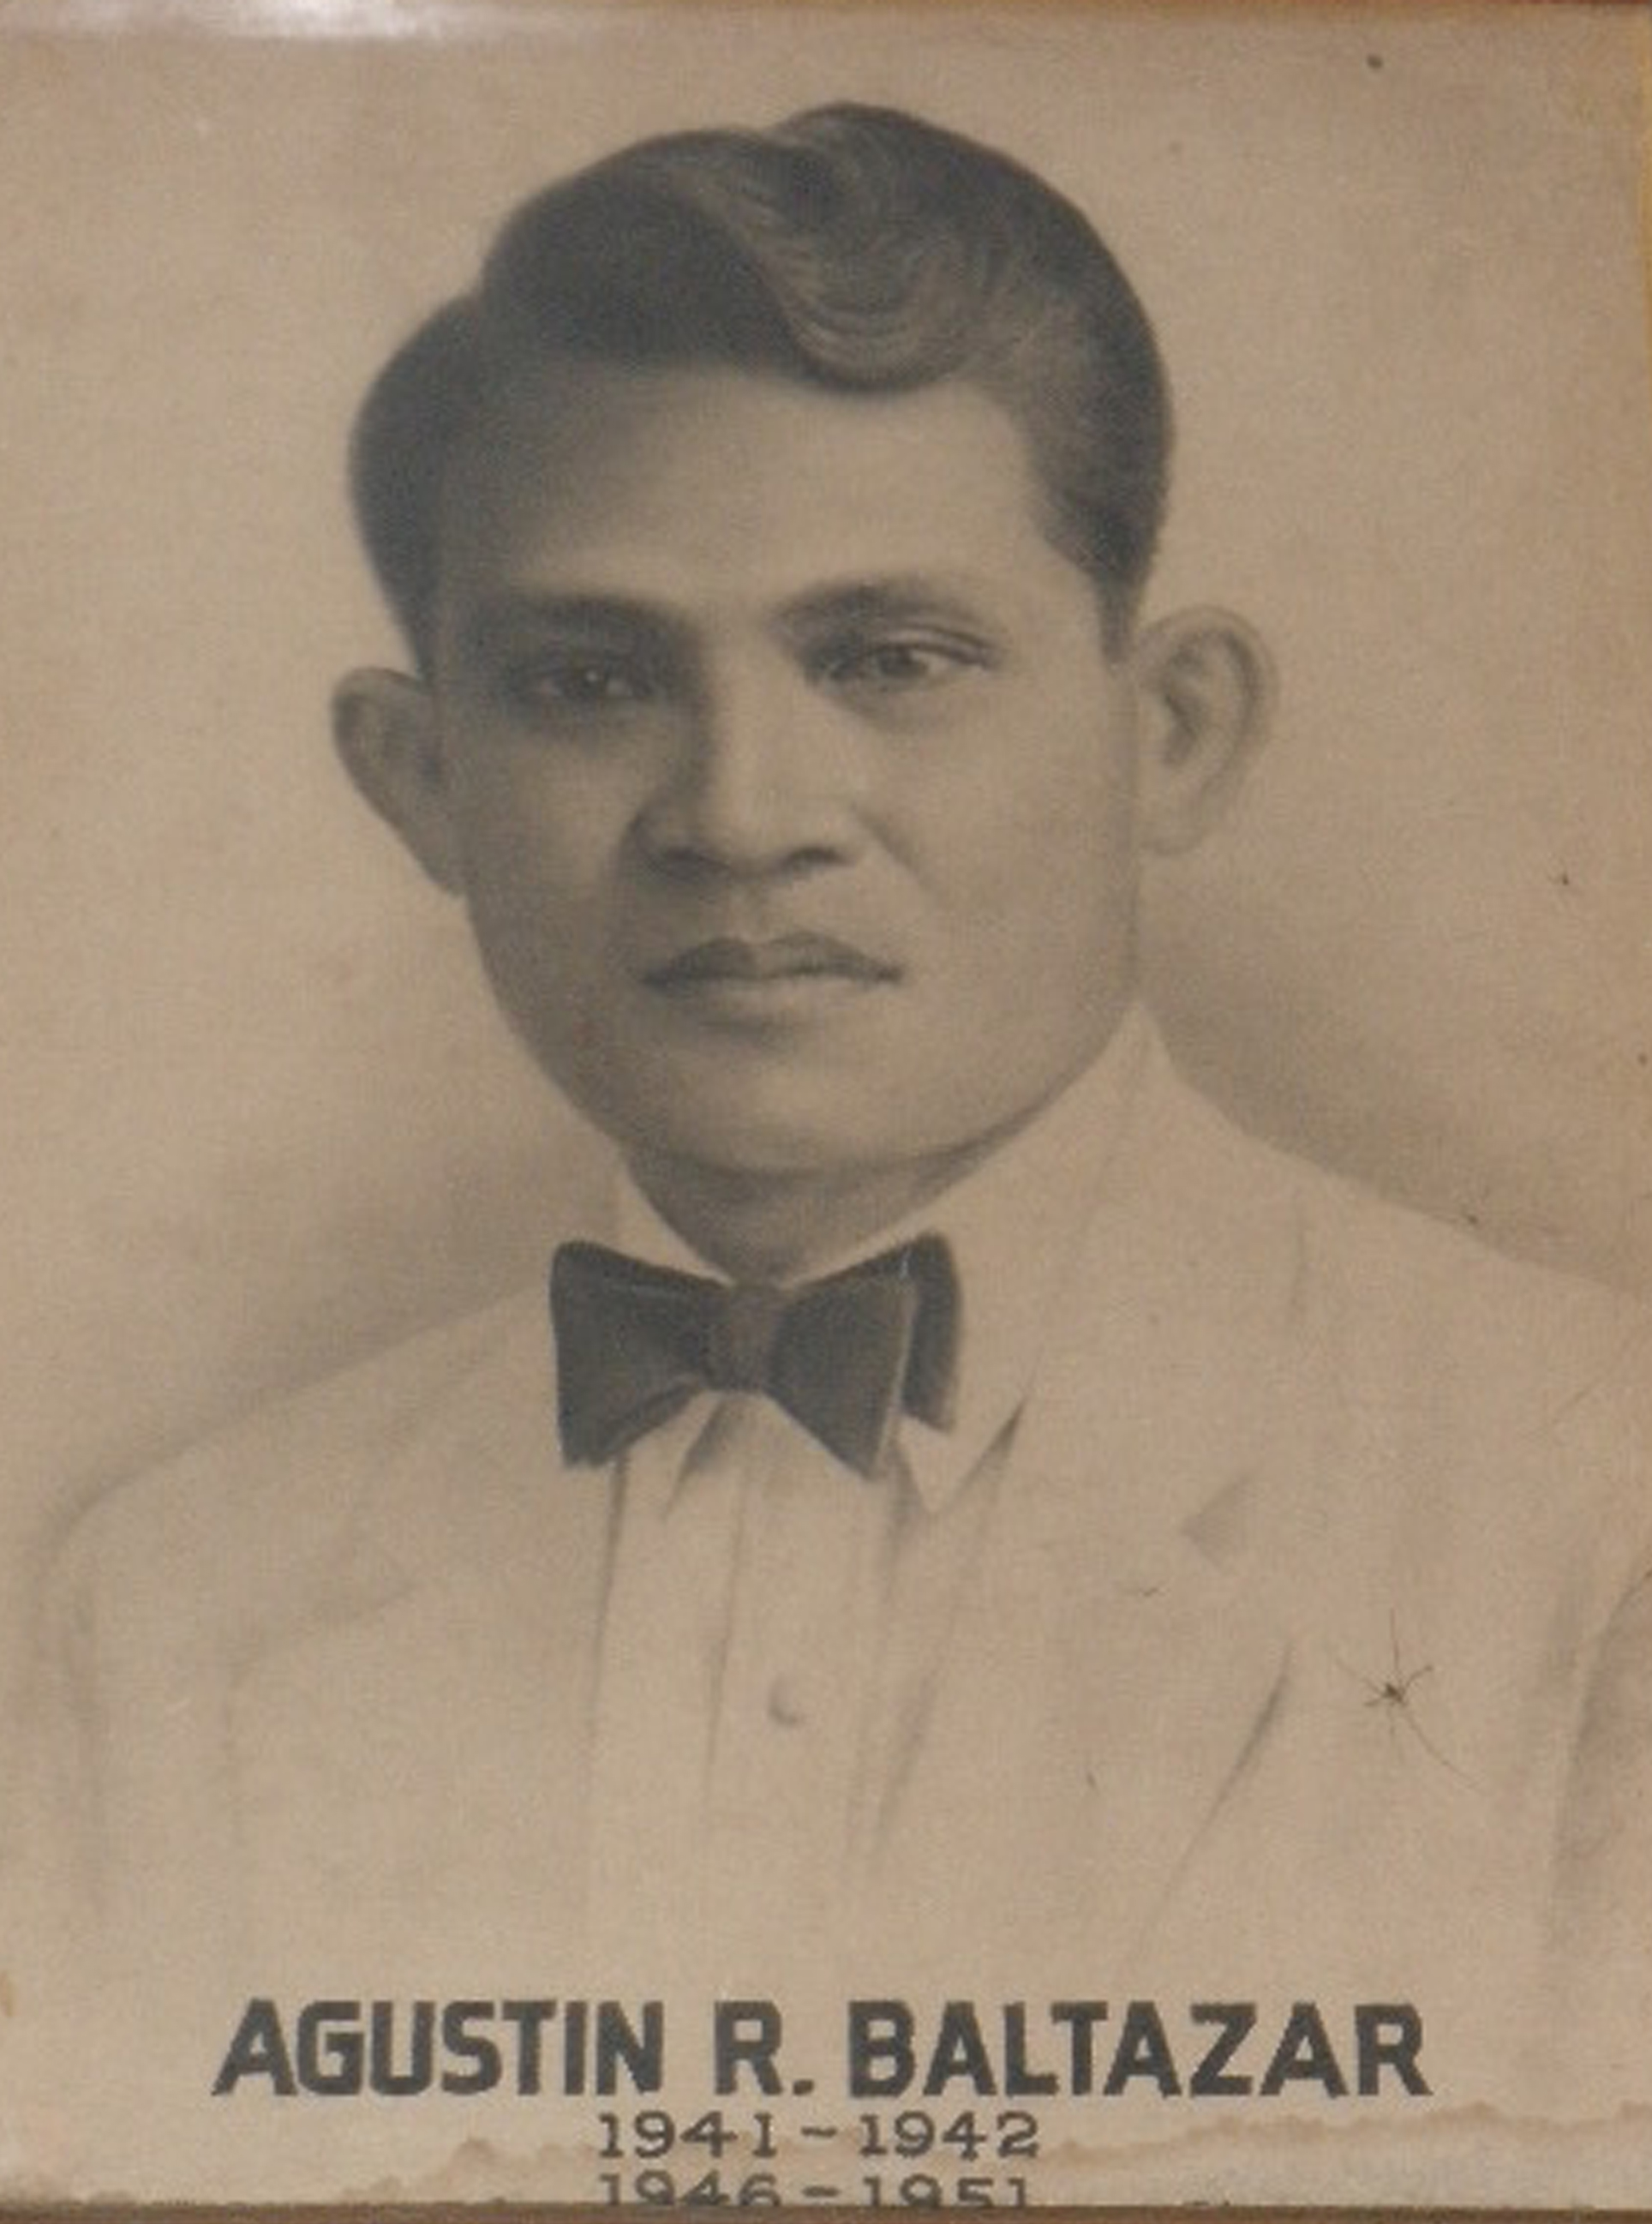 Mayor Agustin Baltazar (1941-1942)